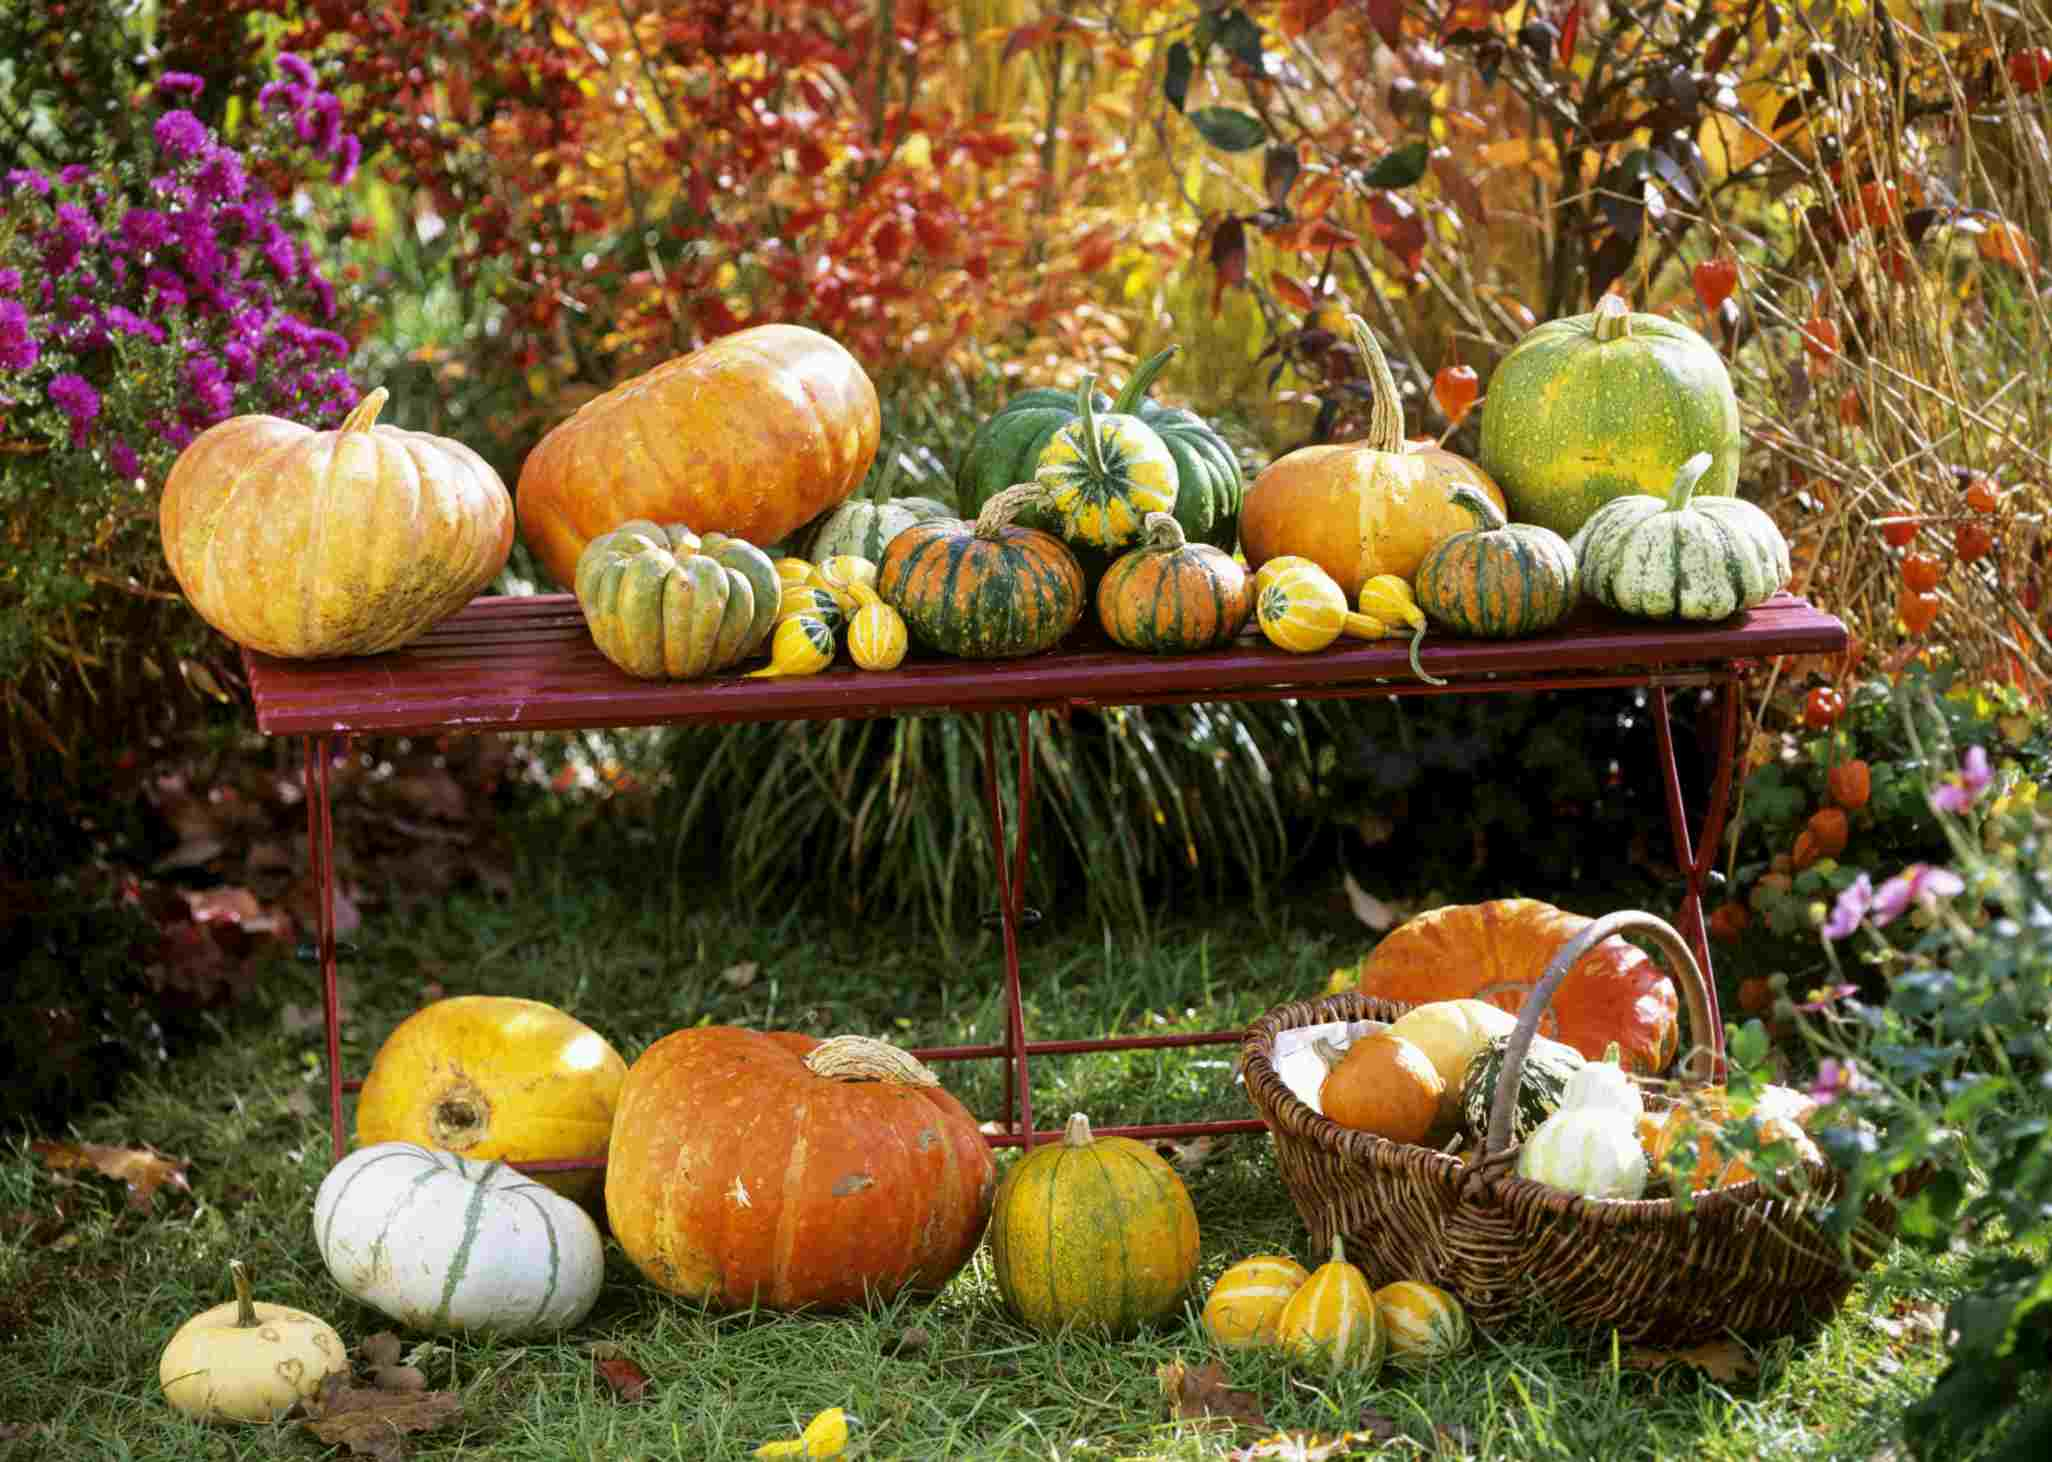 A group of pumpkins and gourds.